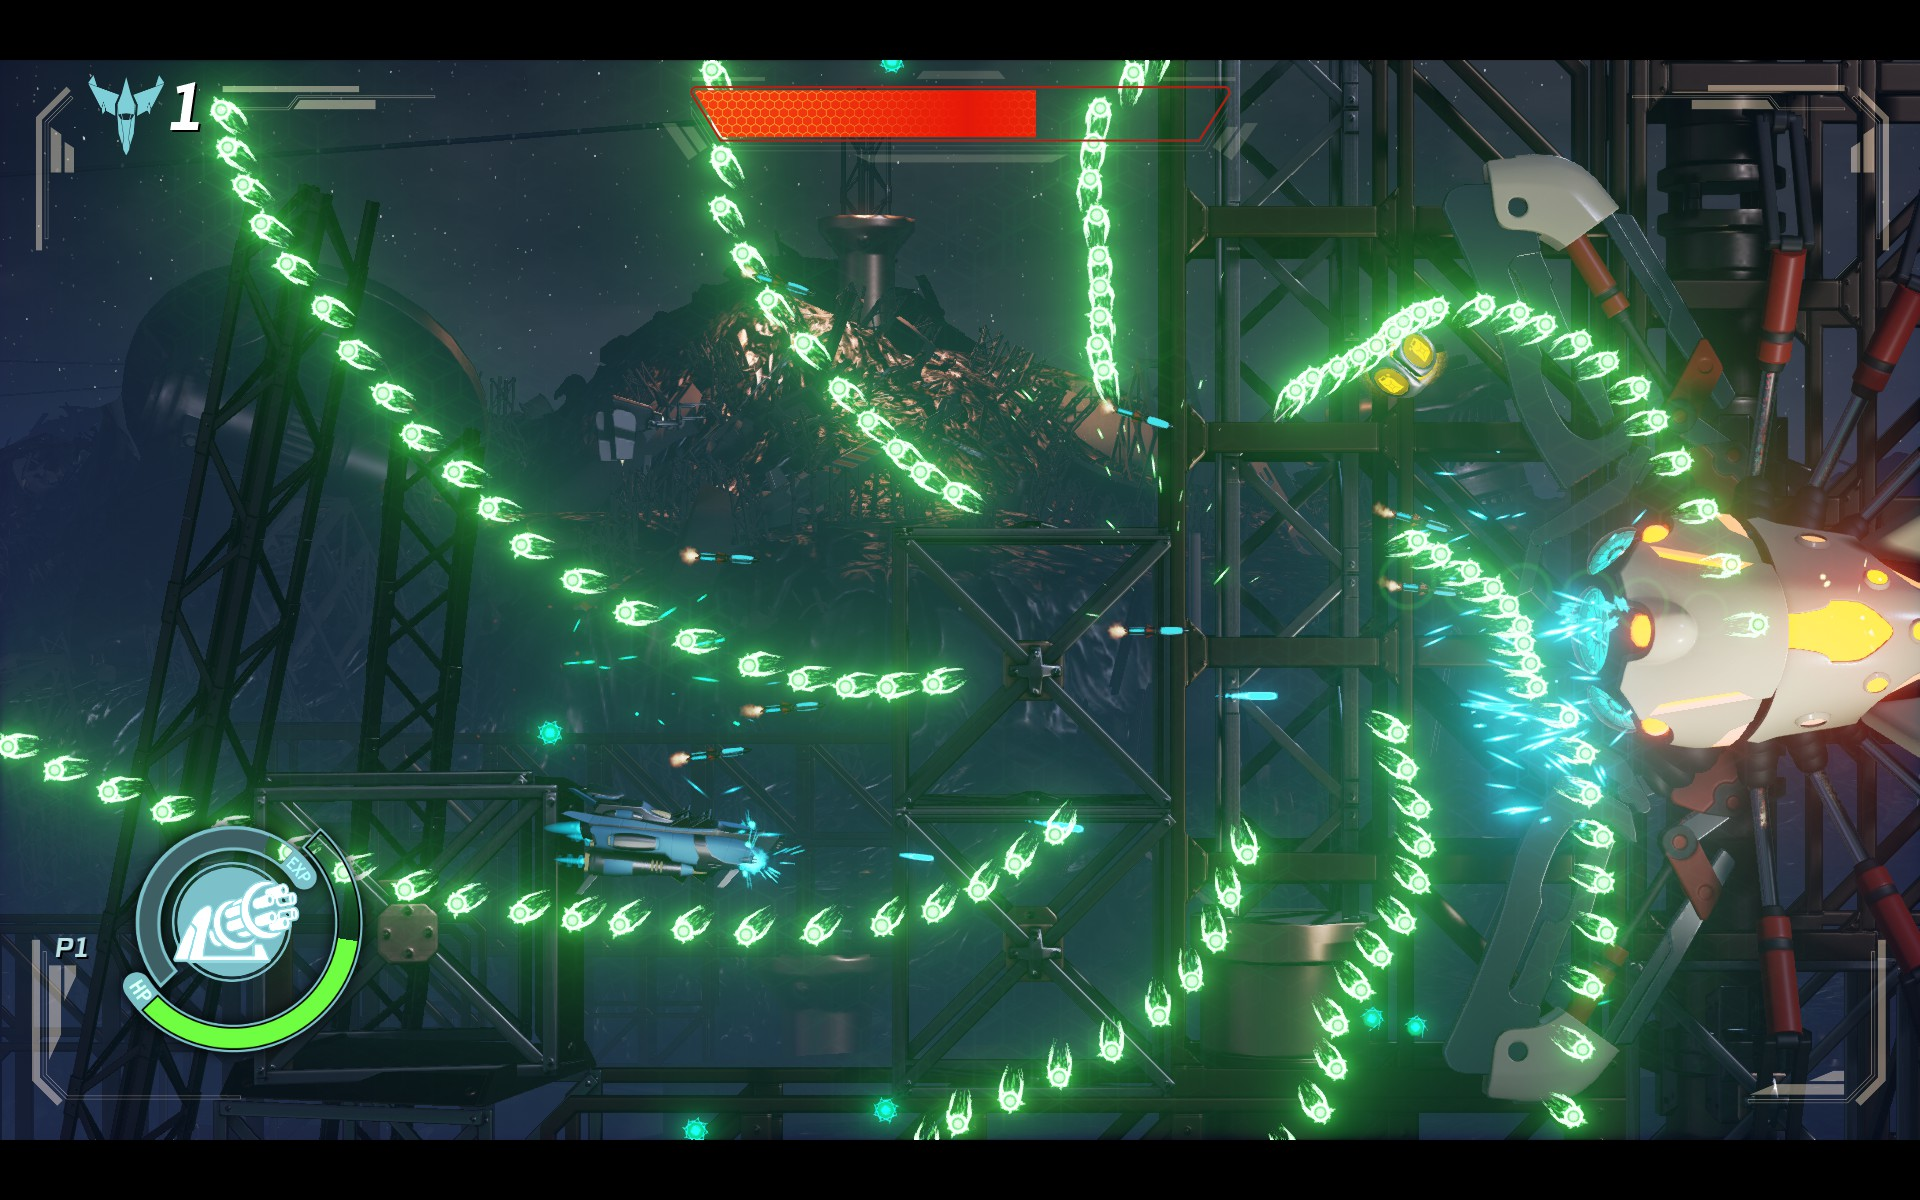 Galacide Combines Puzzle Elements With Shoot Em Up Gameplay, Now Porting To Consoles